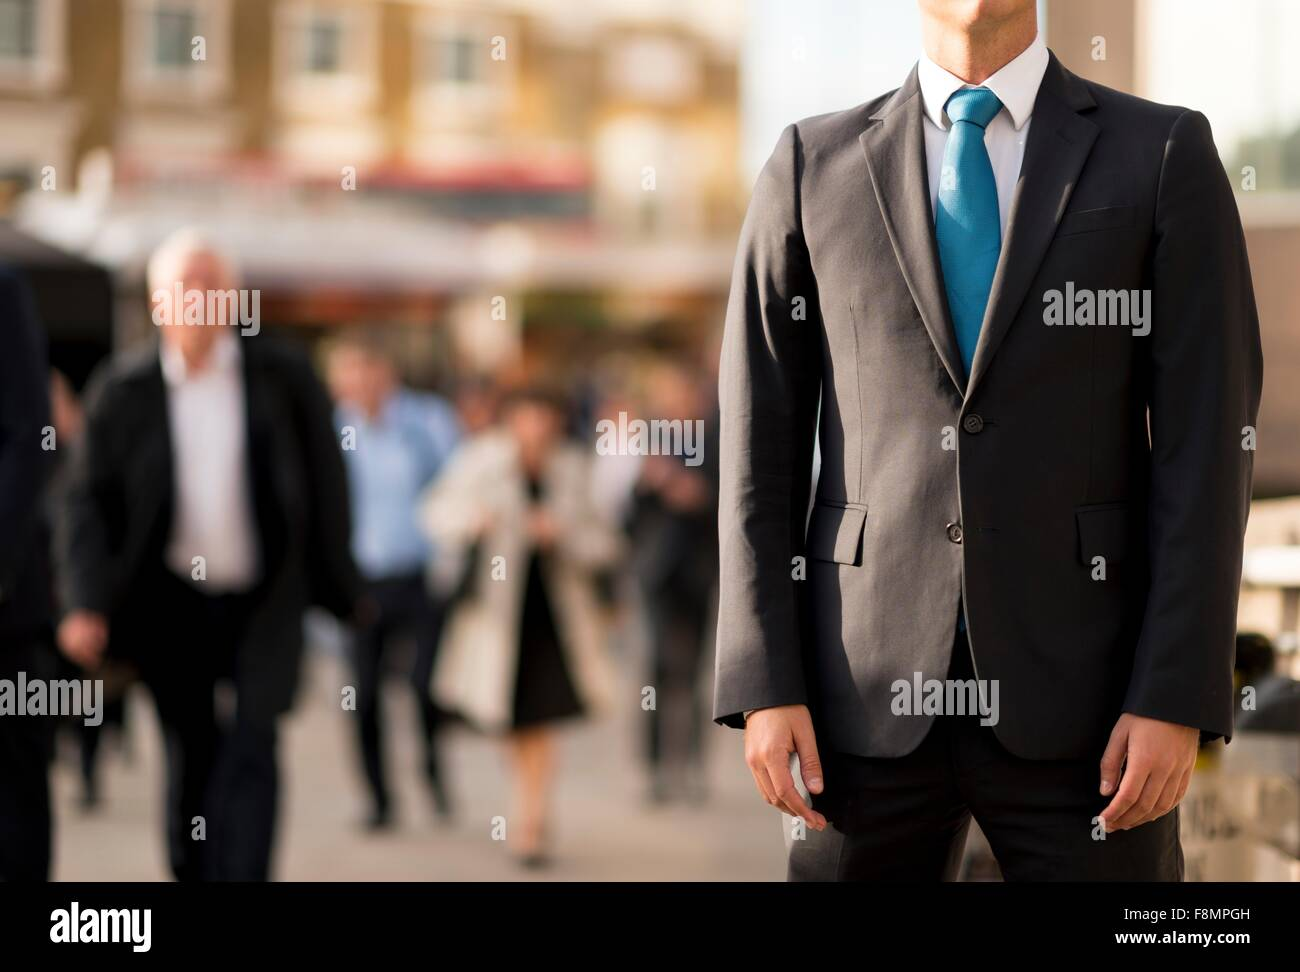 Businessman in suit, partially obscured, London, UK - Stock Image